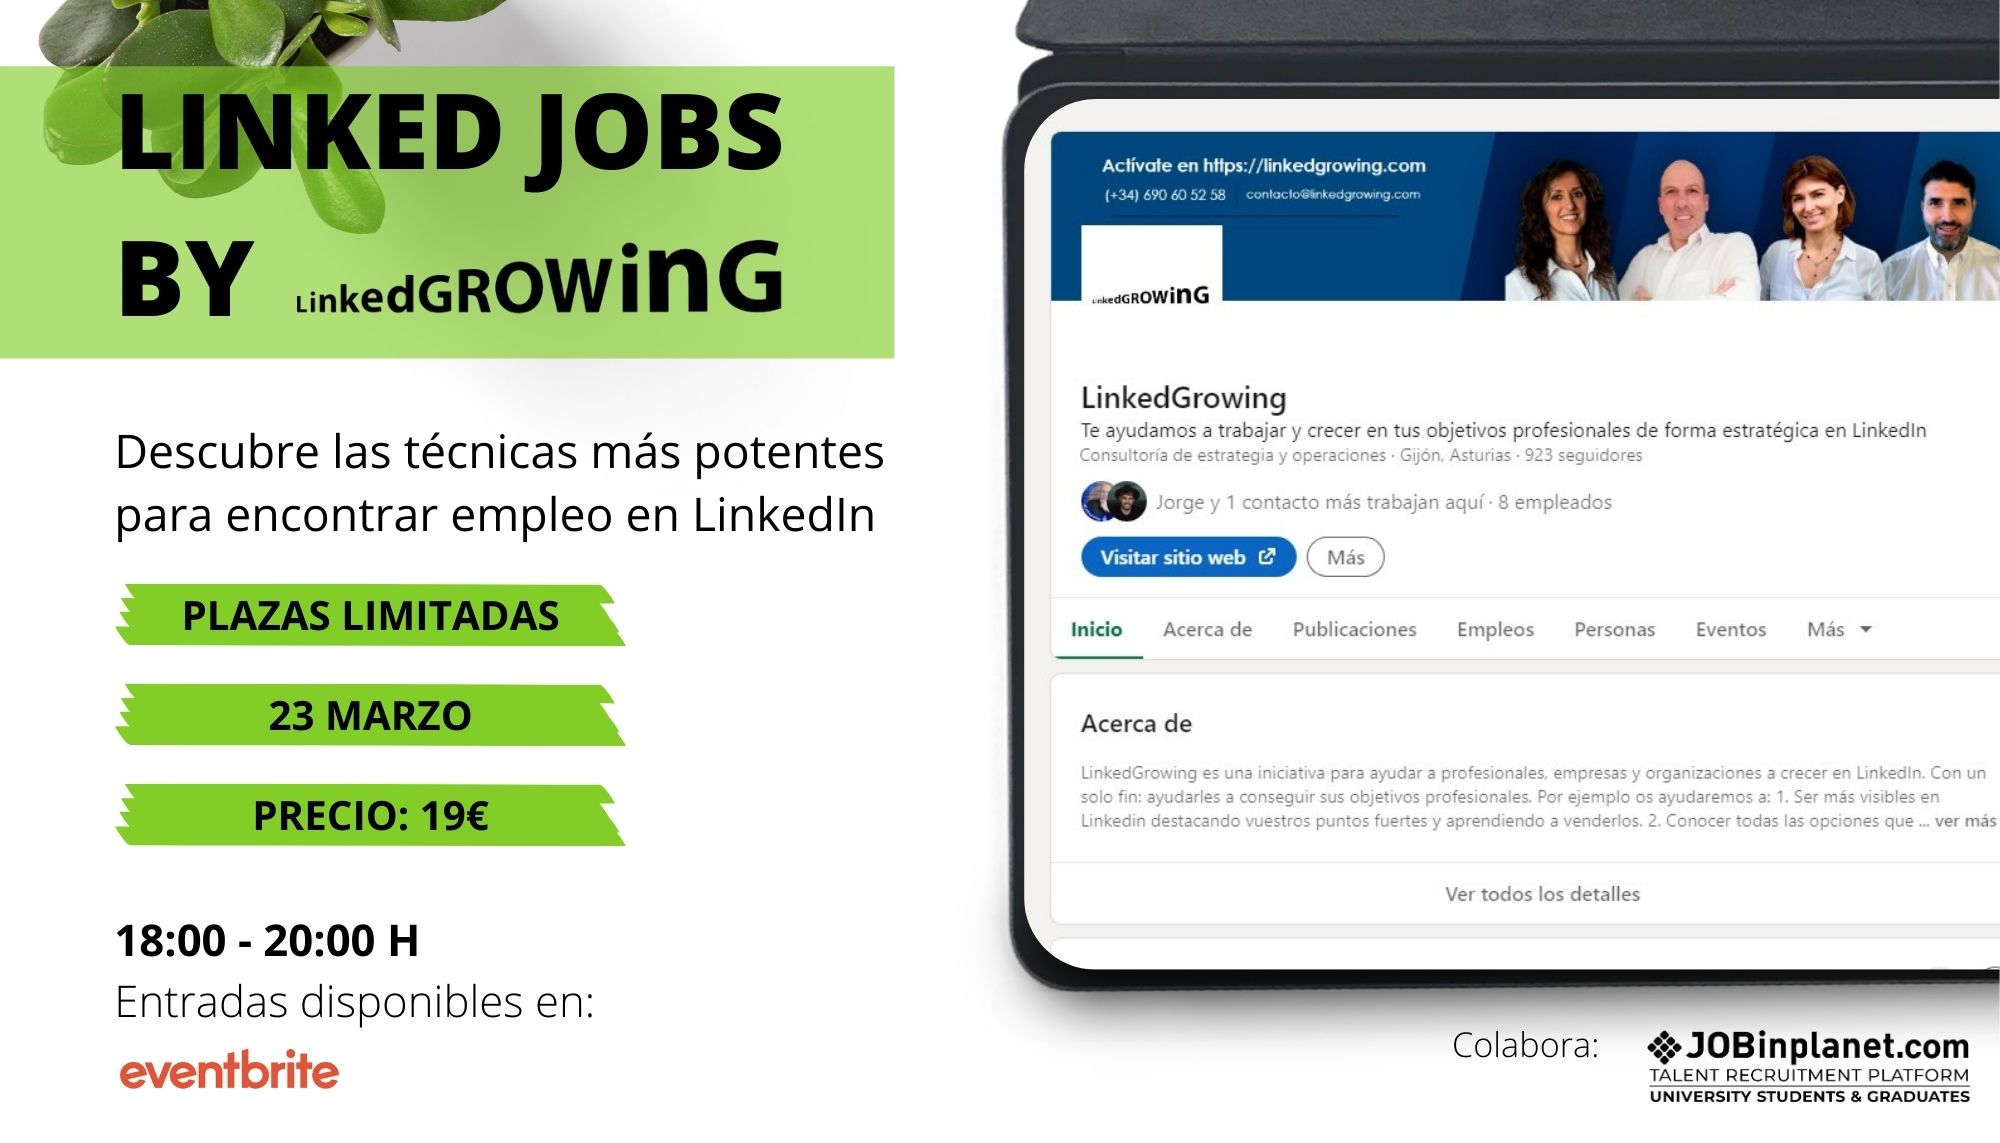 Linked JOBS by LinkedGrowing